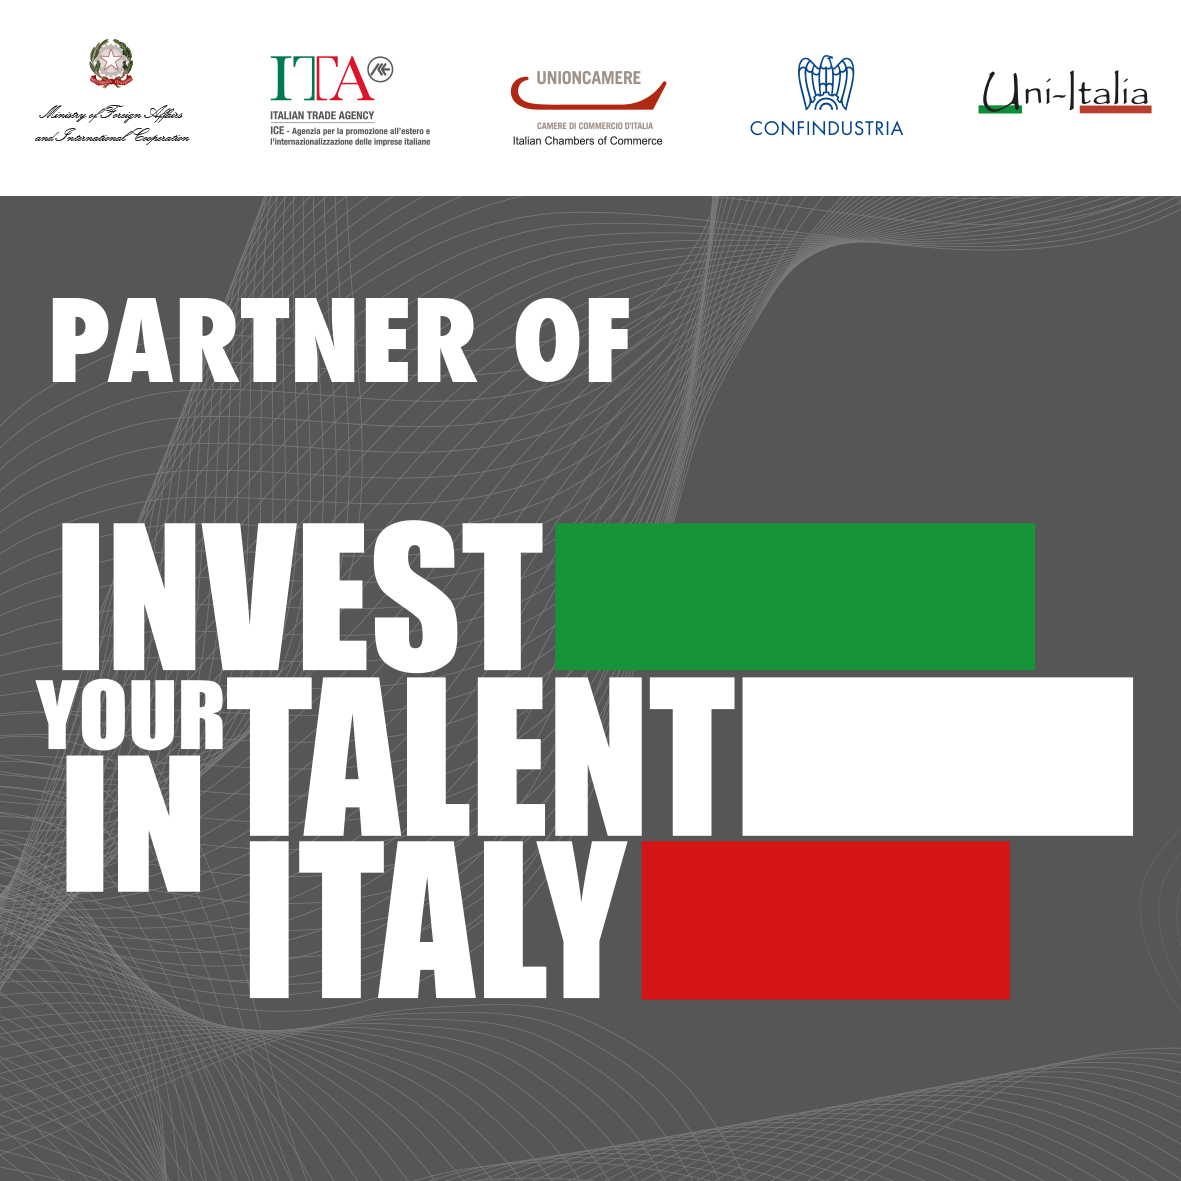 Invest your talent in itlay